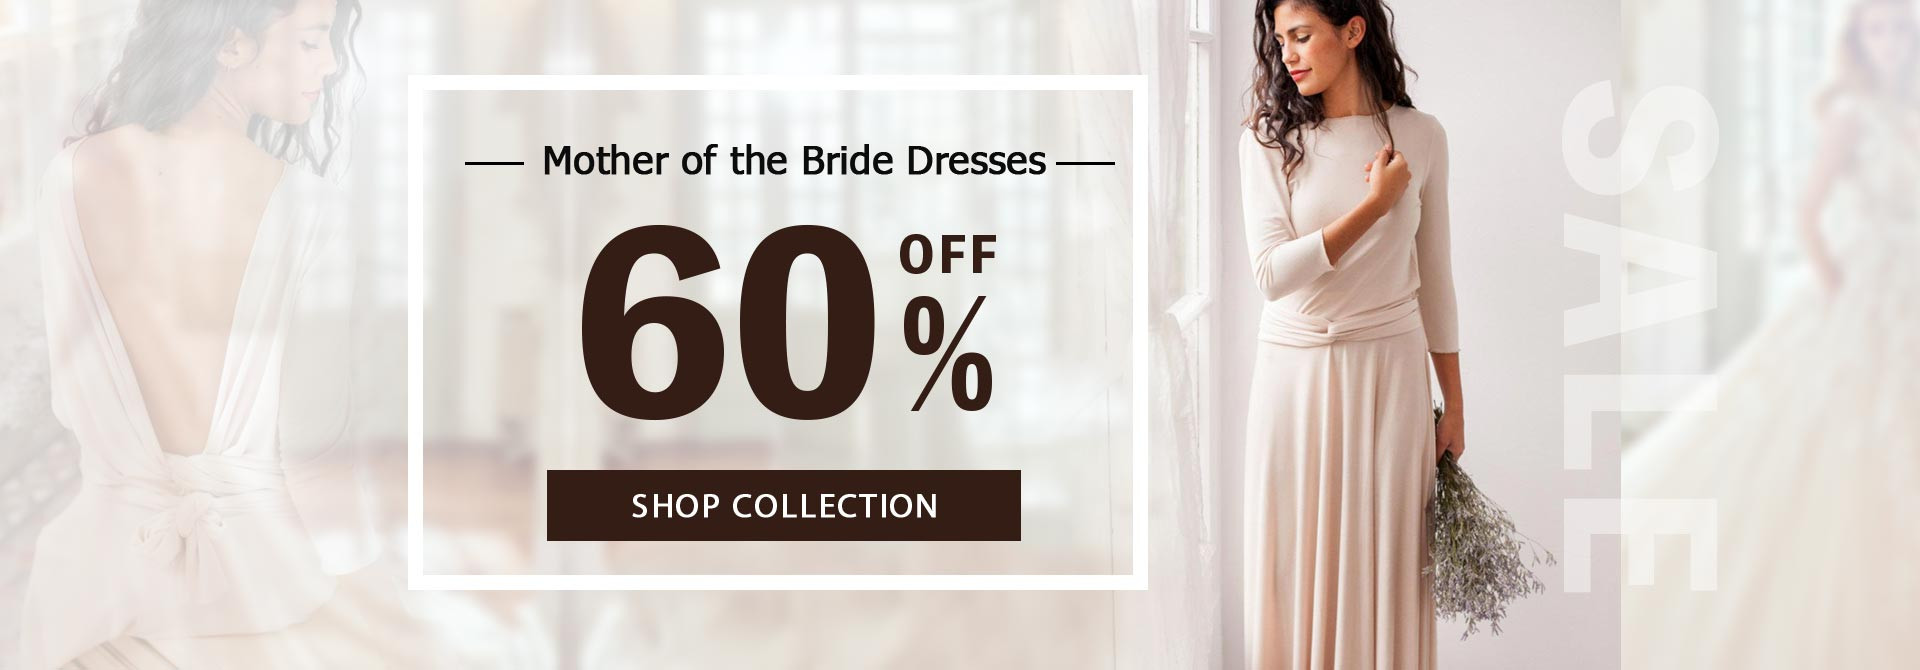 Mother of the Bride Dress 60% OFF